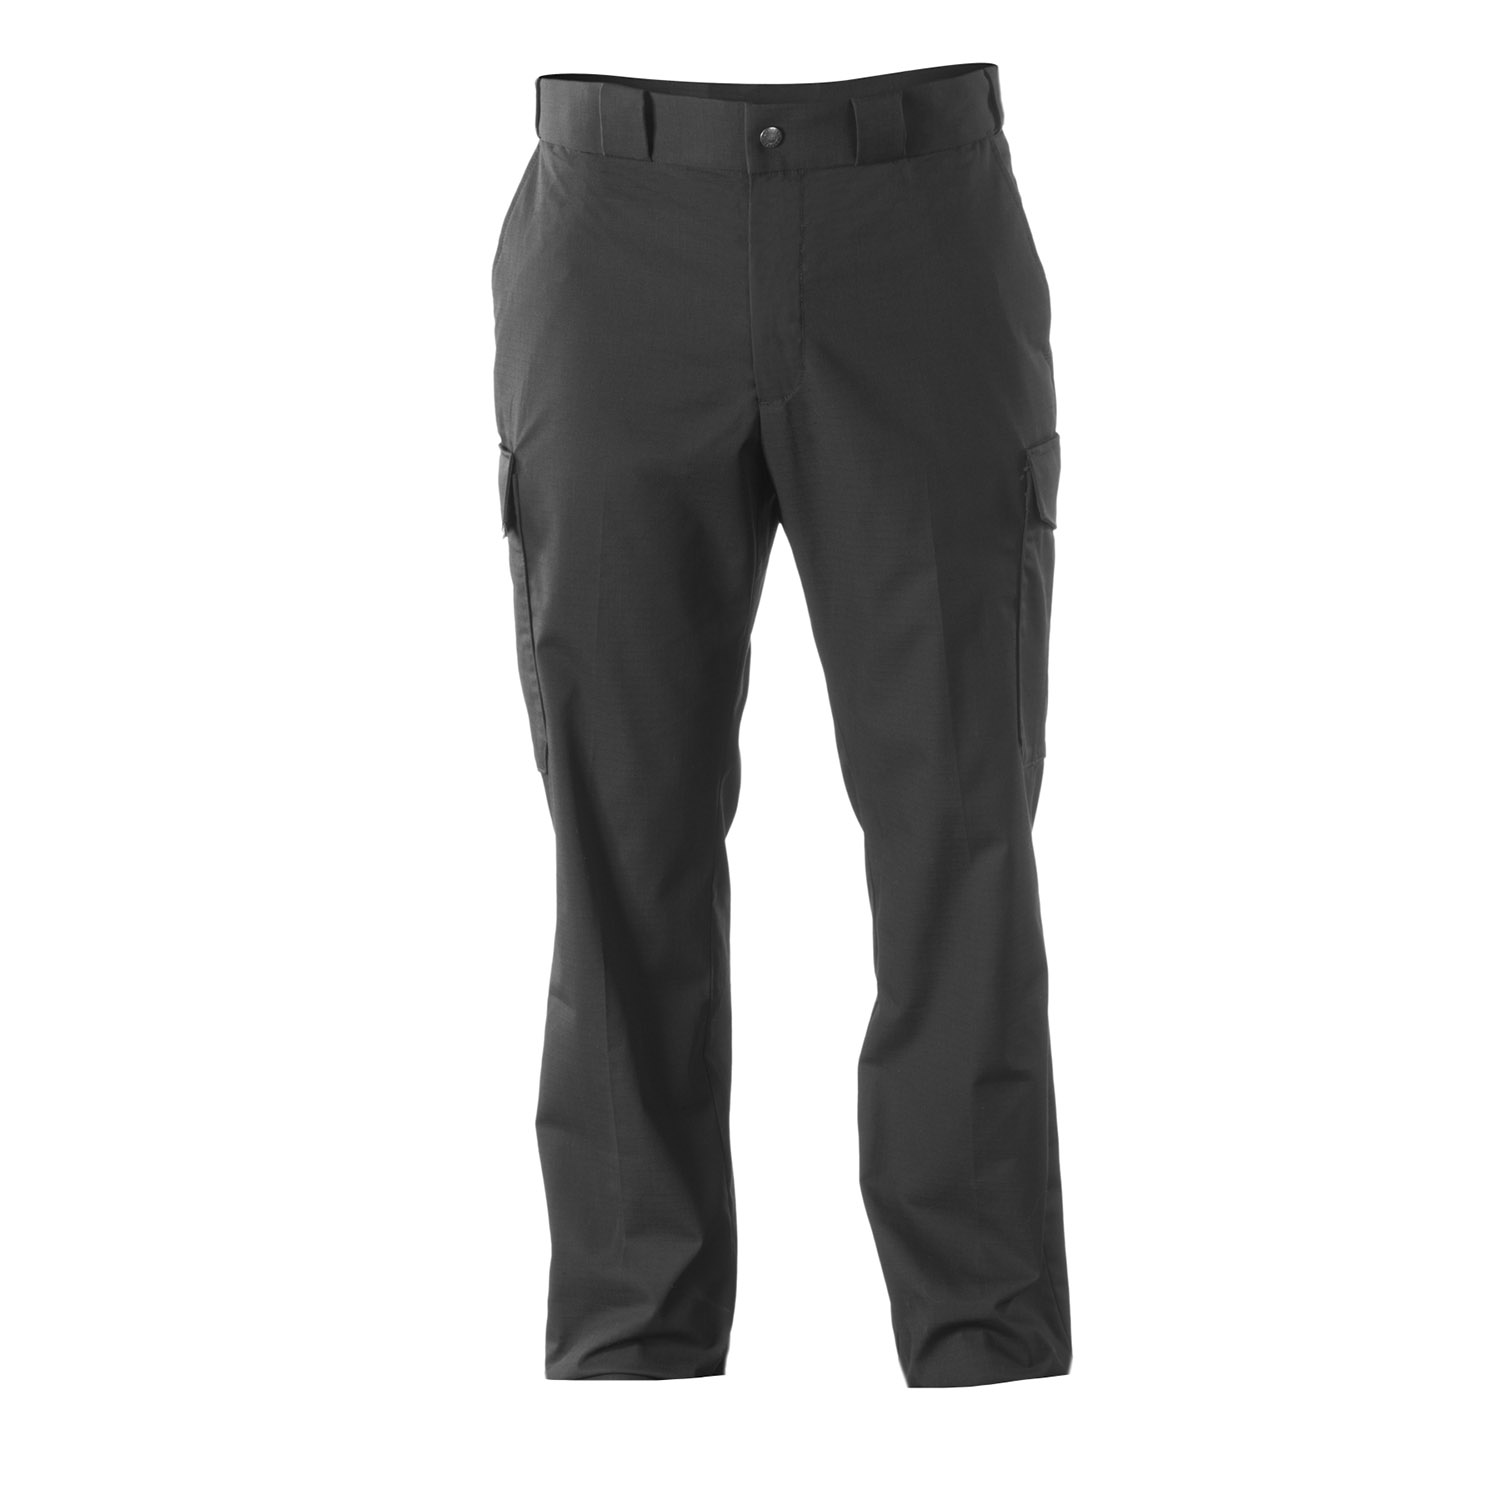 5.11 Tactical Women's Class B Stryke PDU Pants